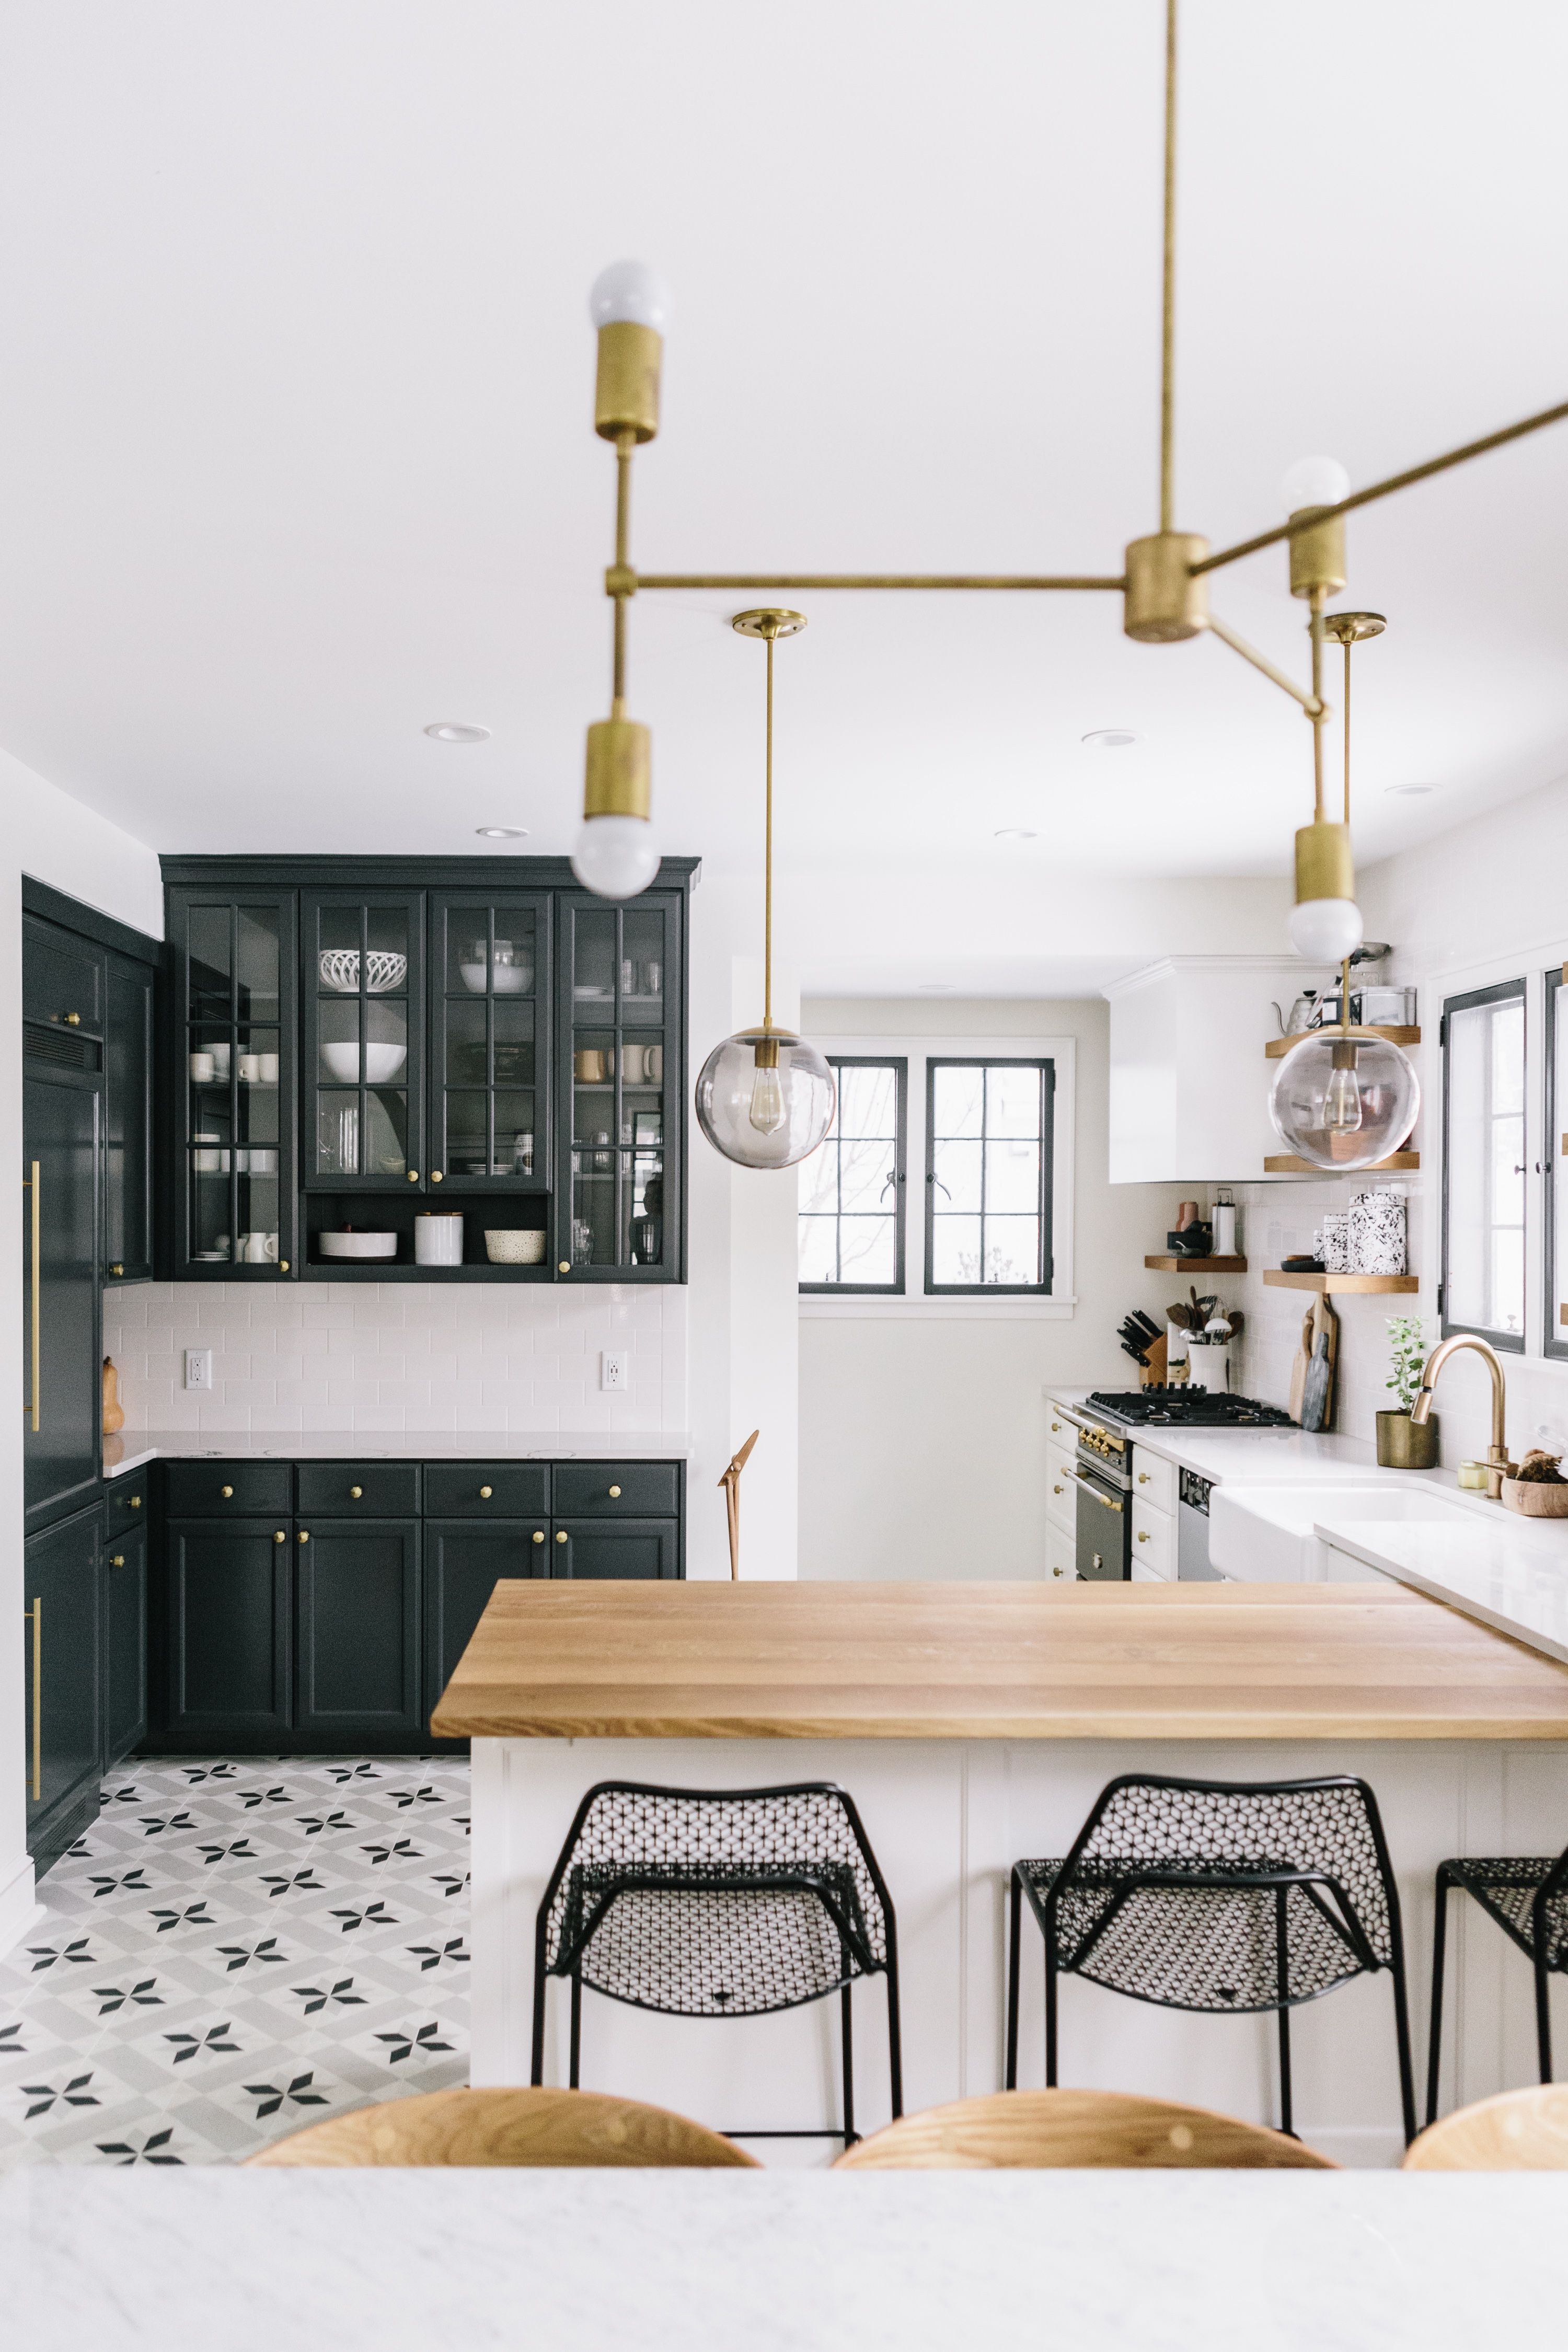 Our newest obsession: concrete flooring with bold patterns. Wit and ...